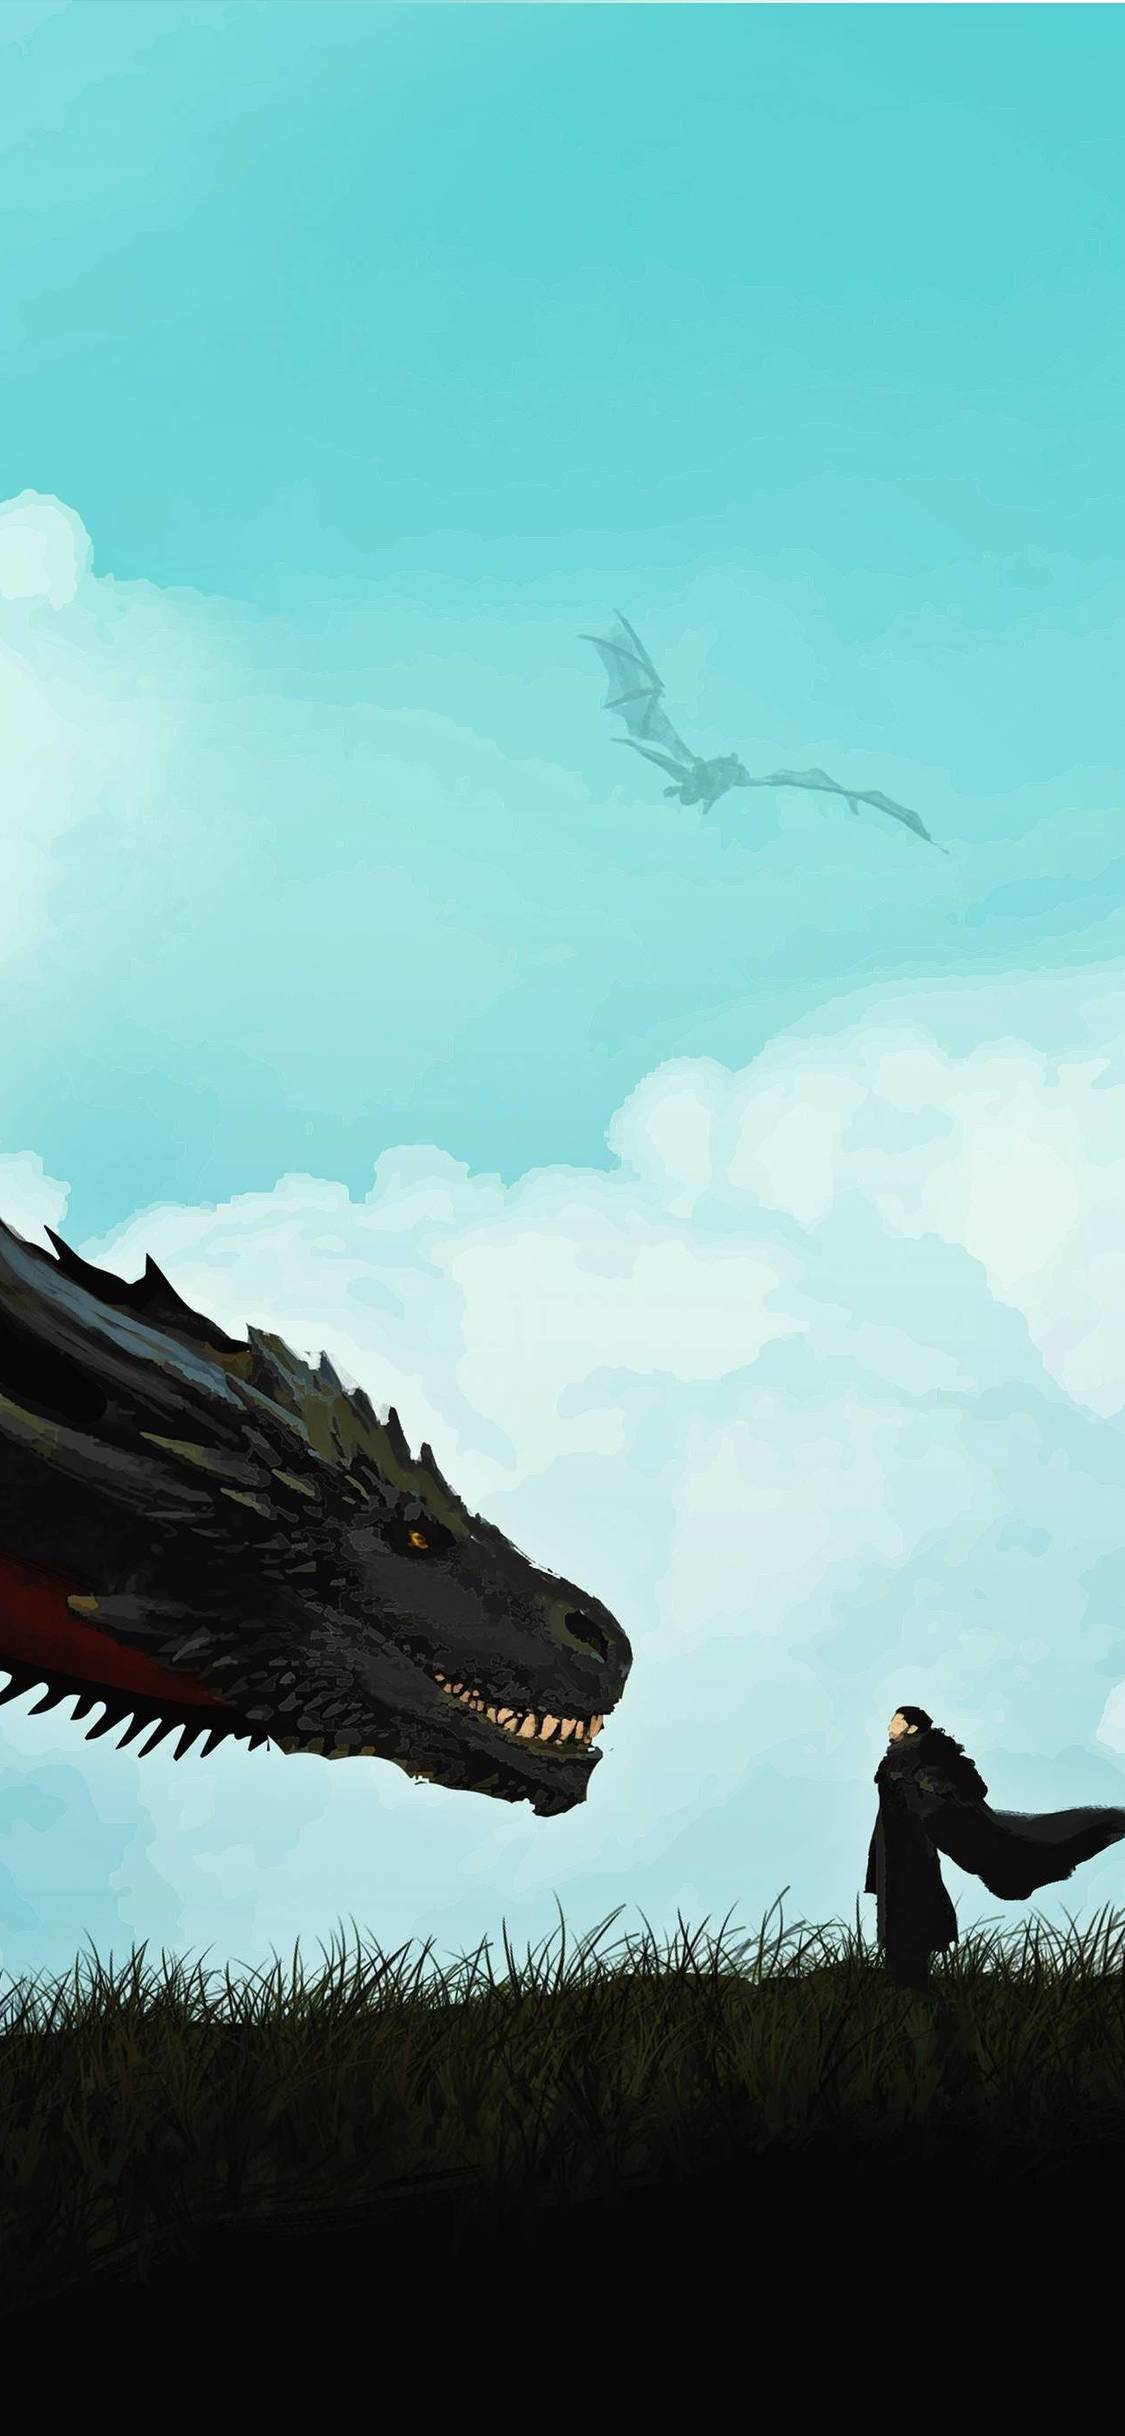 jon snow and khalessi dragon iPhone game of thrones wallpaper - Tổng hợp ảnh nền Game of Thrones đẹp nhất cho iPhone